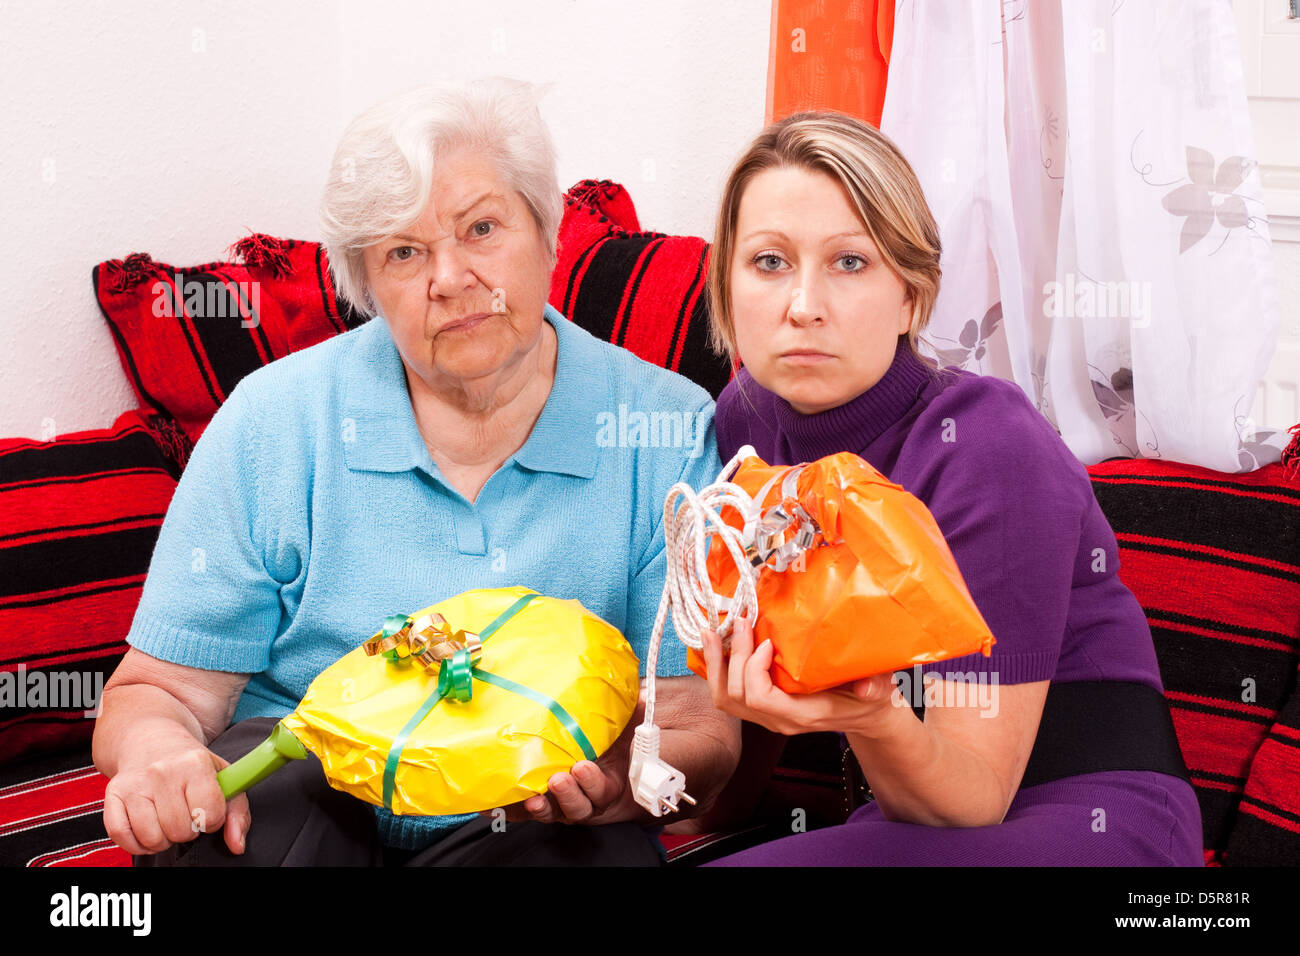 old and young woman are getting improper gifts - Stock Image